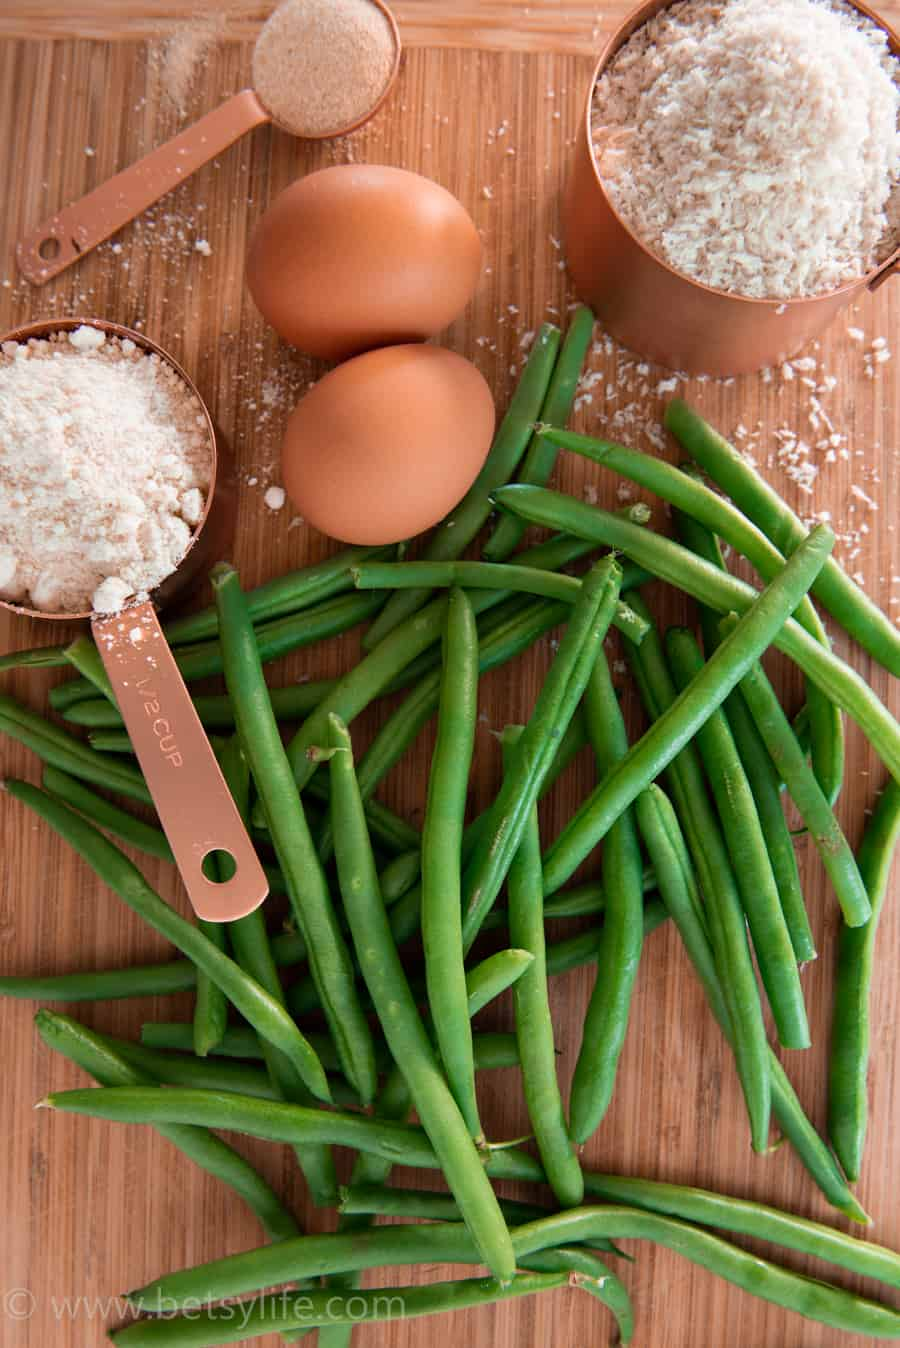 green beans, parmesan cheese, eggs, breadcrumbs and garlic powder on a wood cutting board